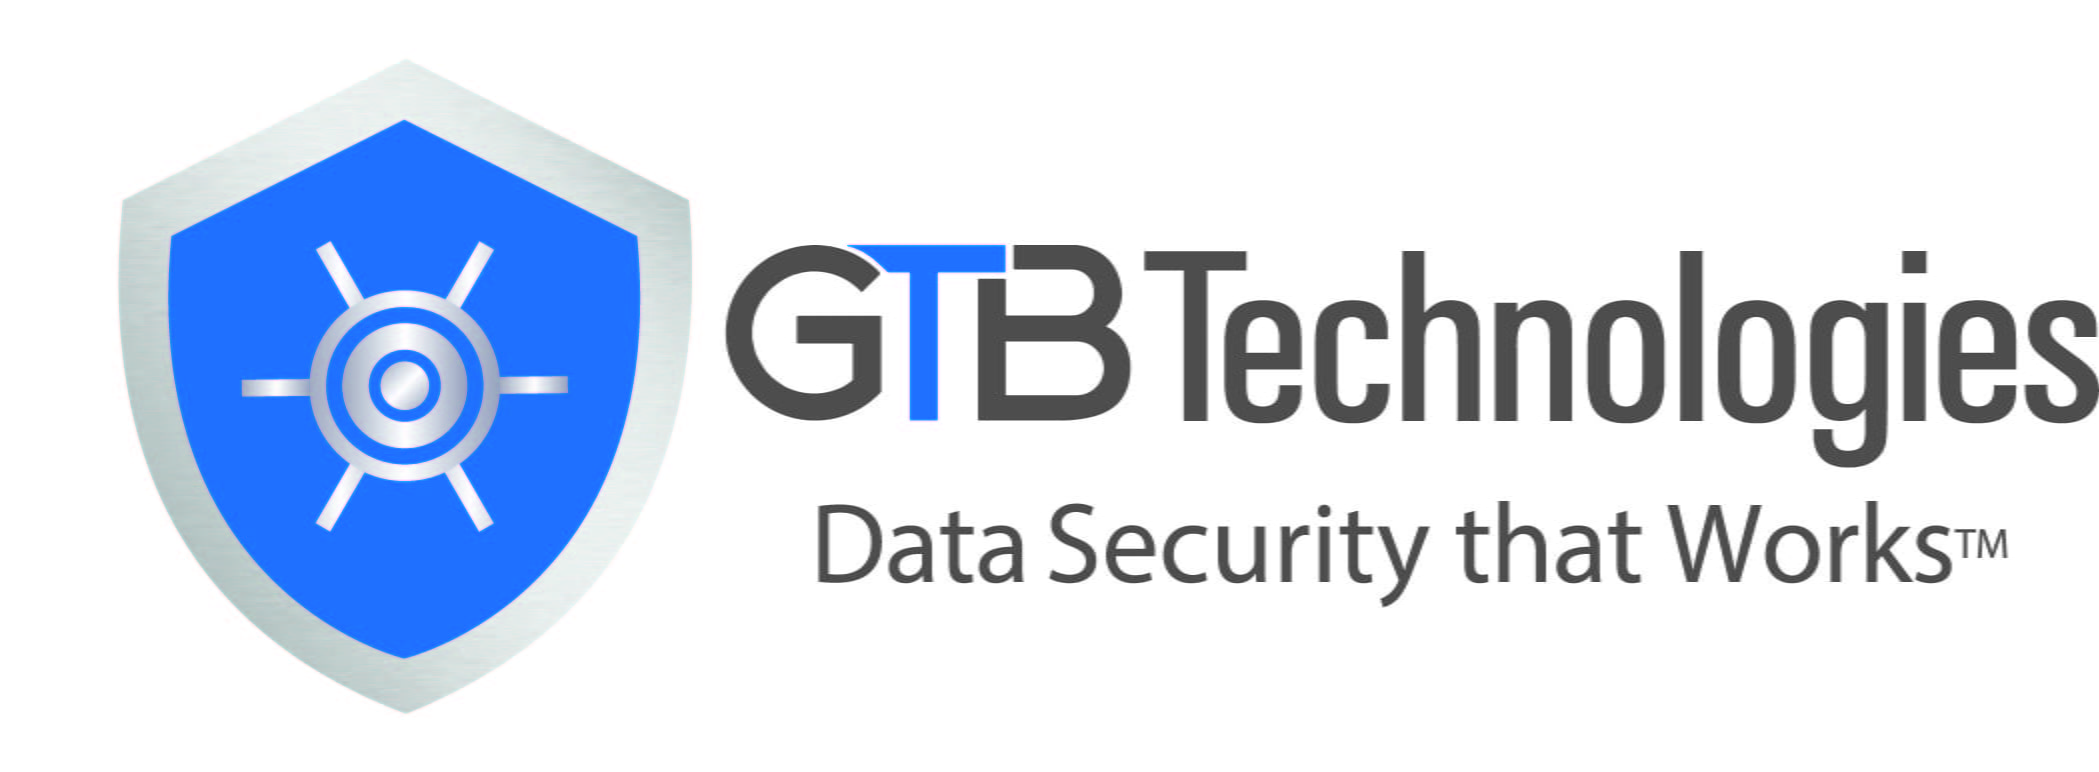 GTB Technologies Named 2021 Best DLP Solution & Top Cybersecurity Company